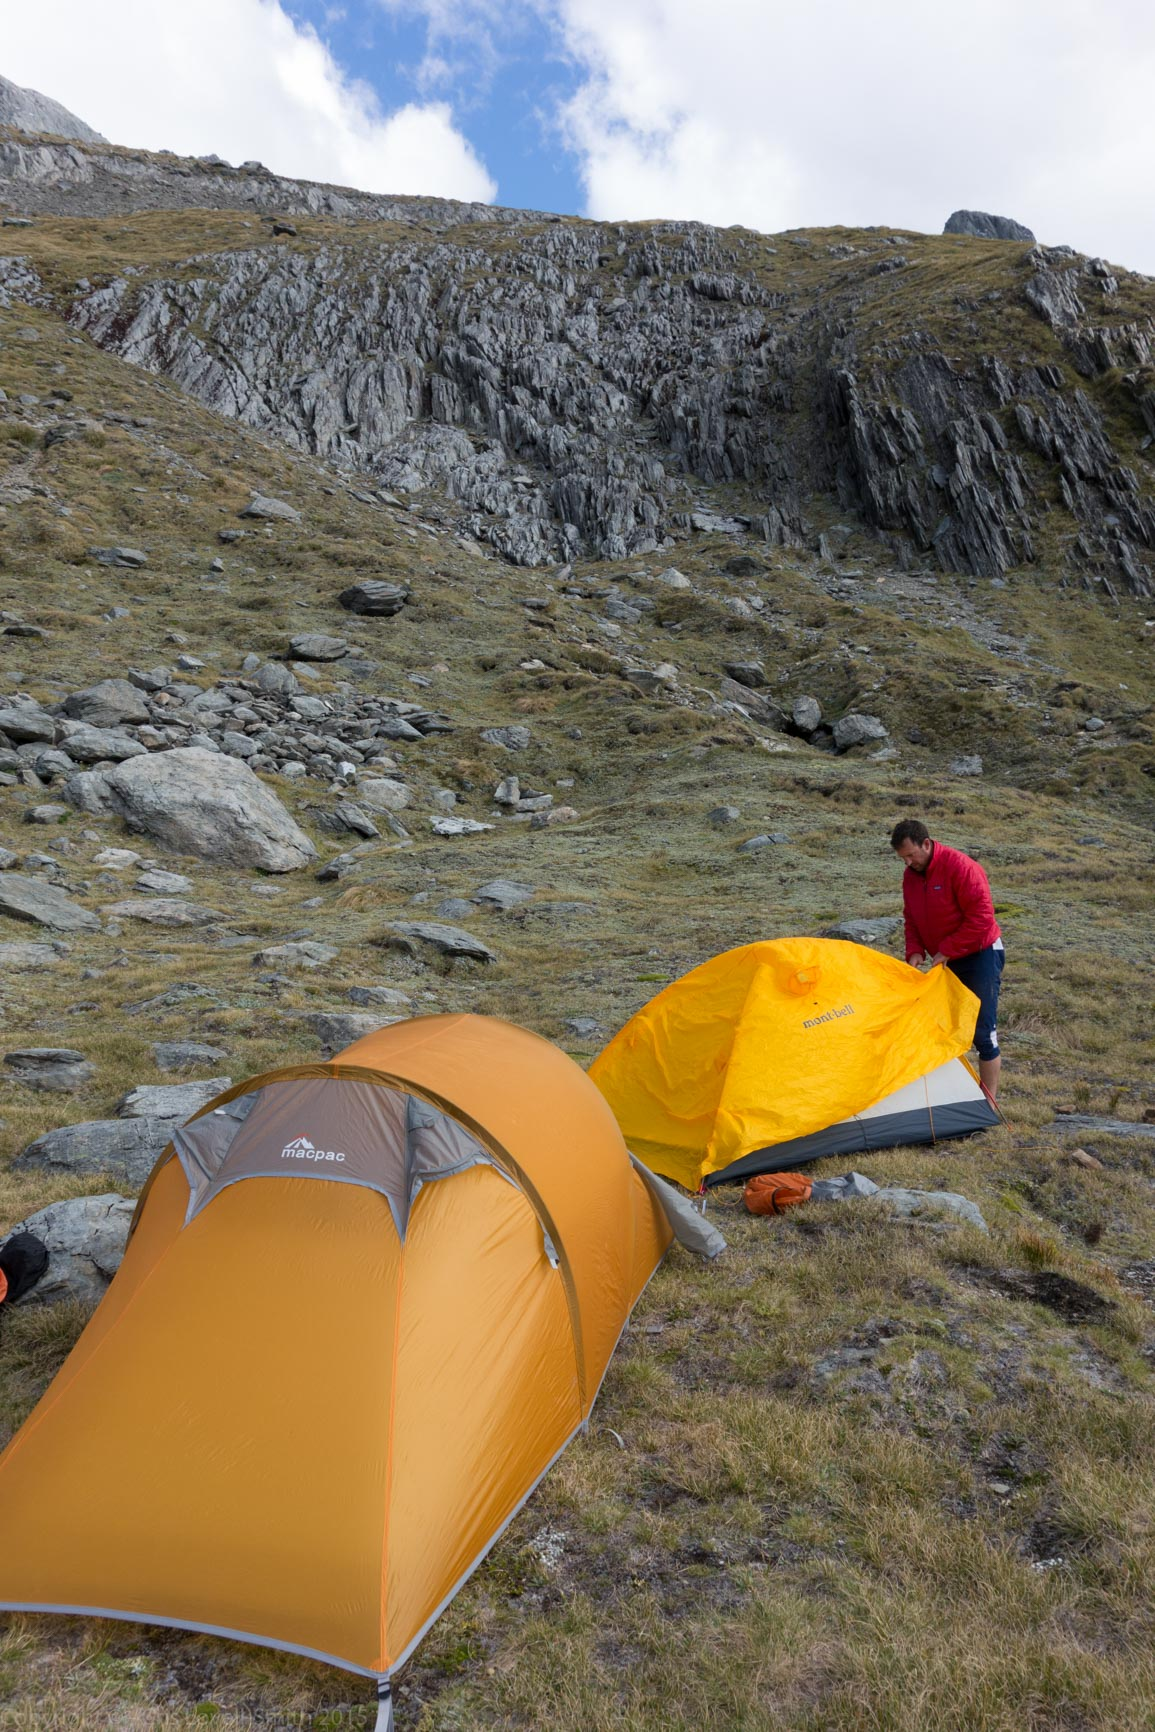 Pitching tents (Hopkins Valley Tramp Jan 2015)